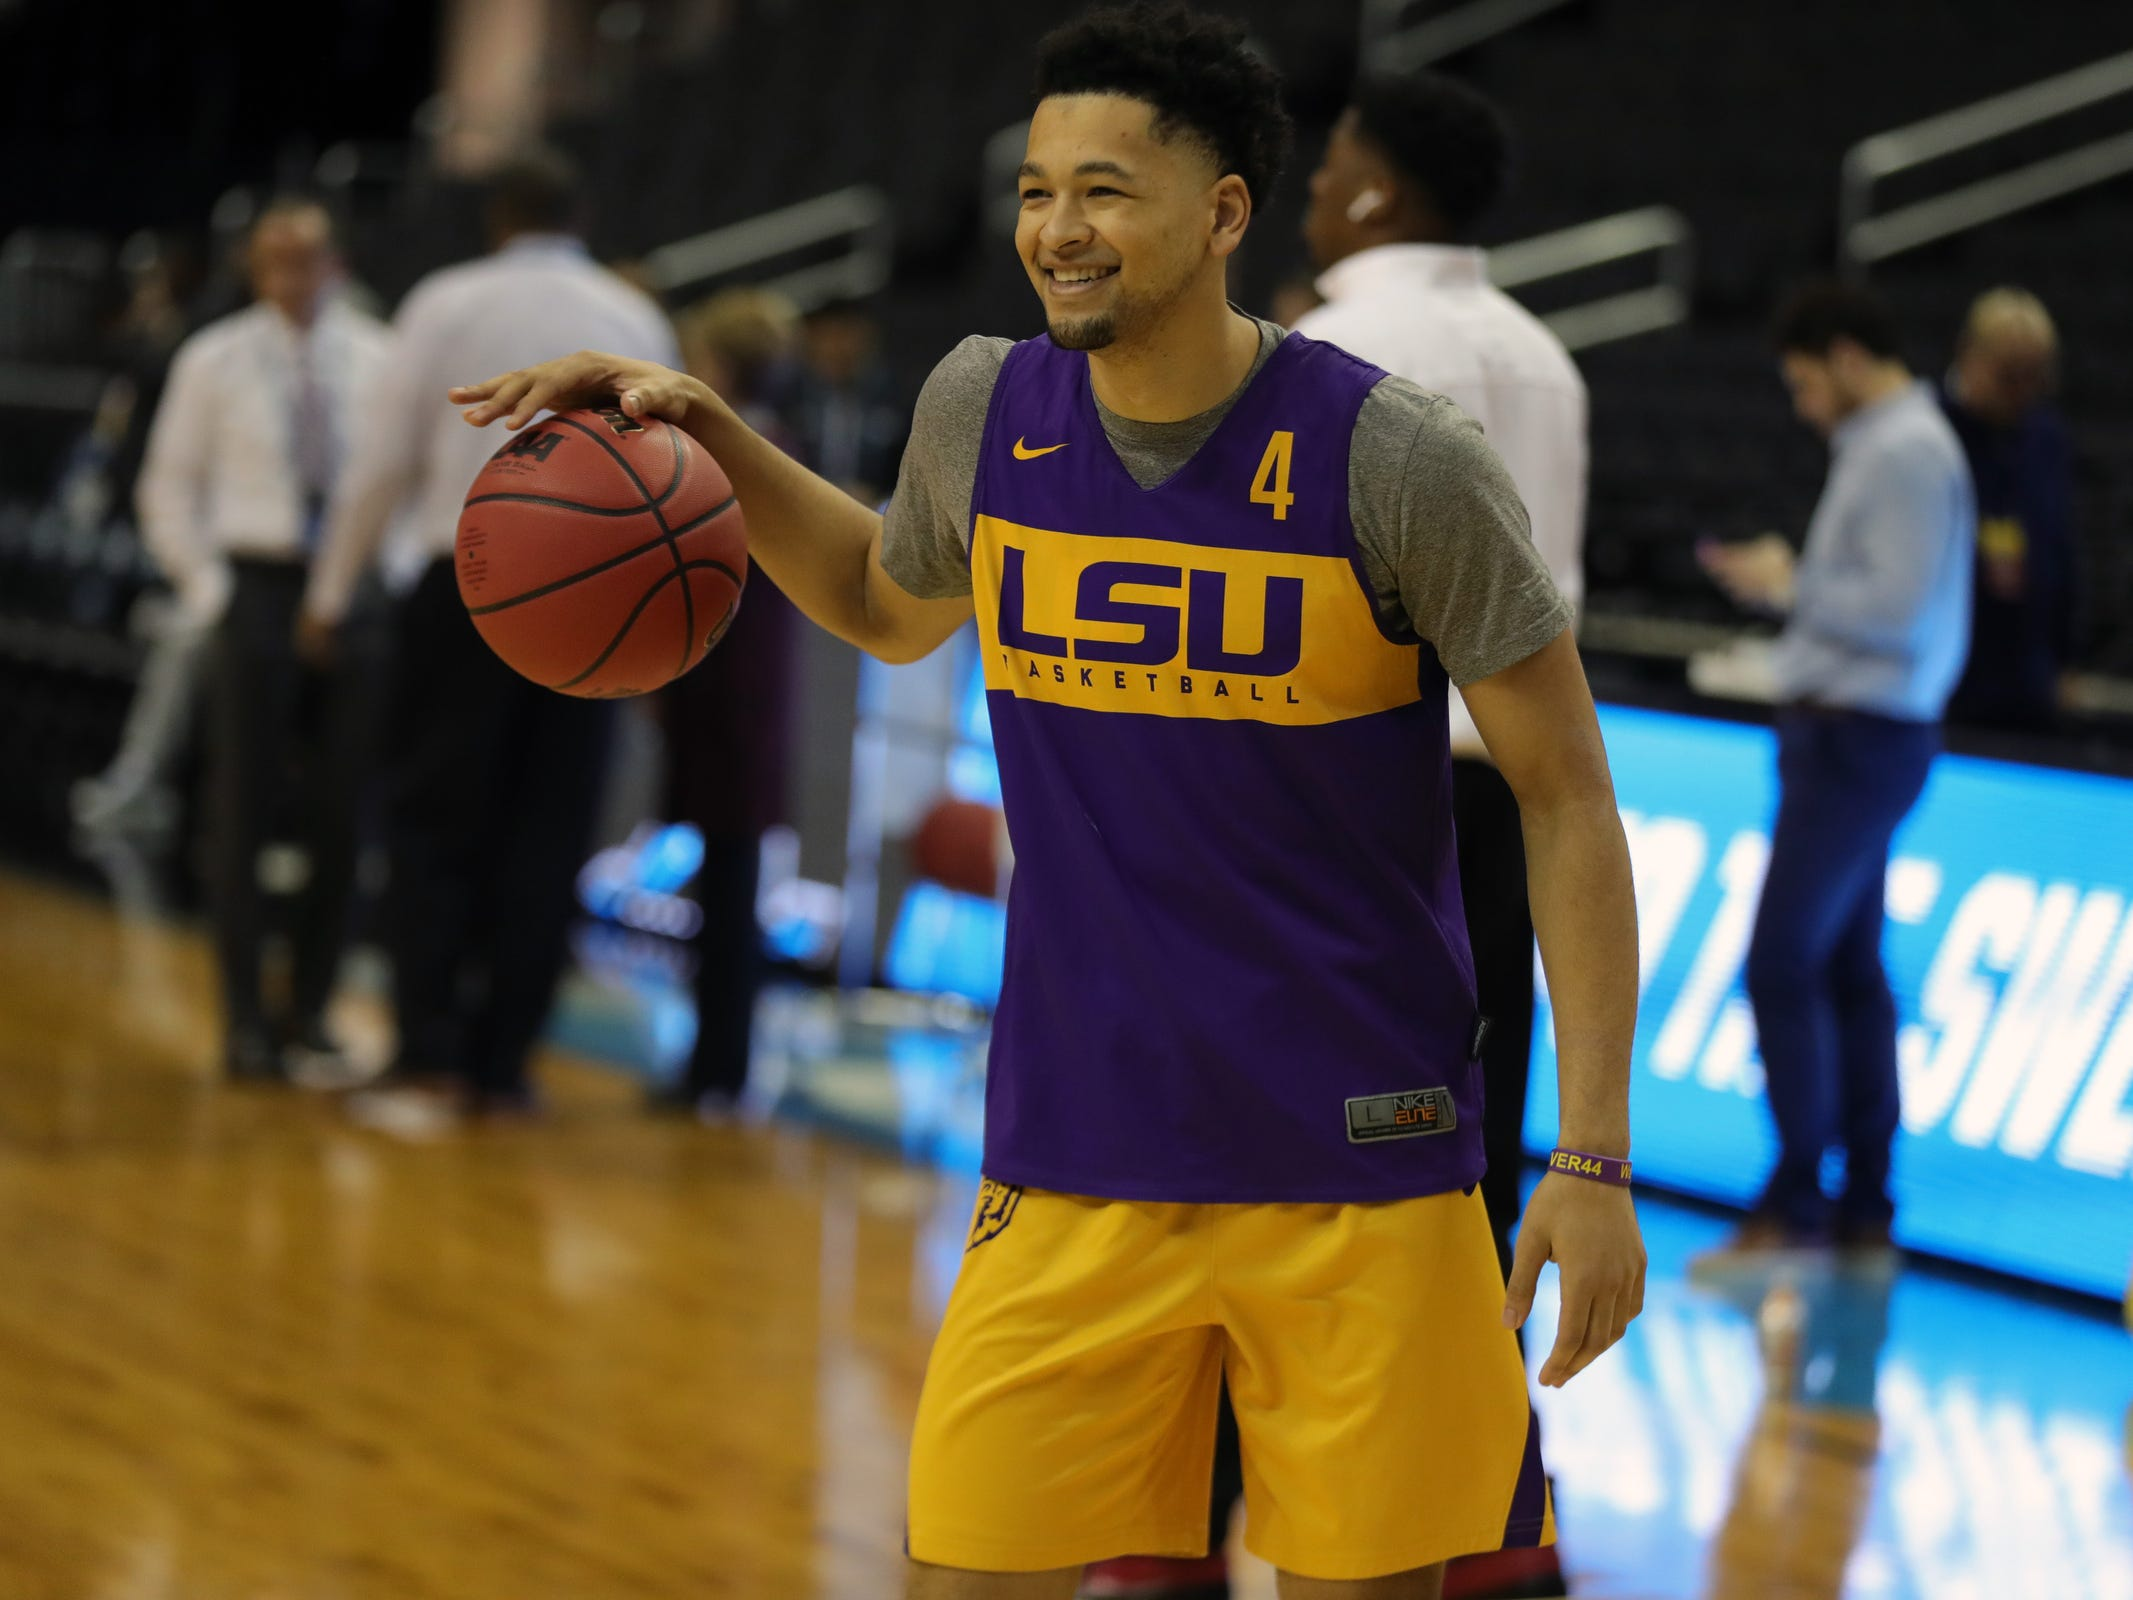 LSU guard Skylar Mays practices for their Sweet 16 game against Michigan State, Thursday, March 28, 2019 at Capital One Arena in Washington, D.C.